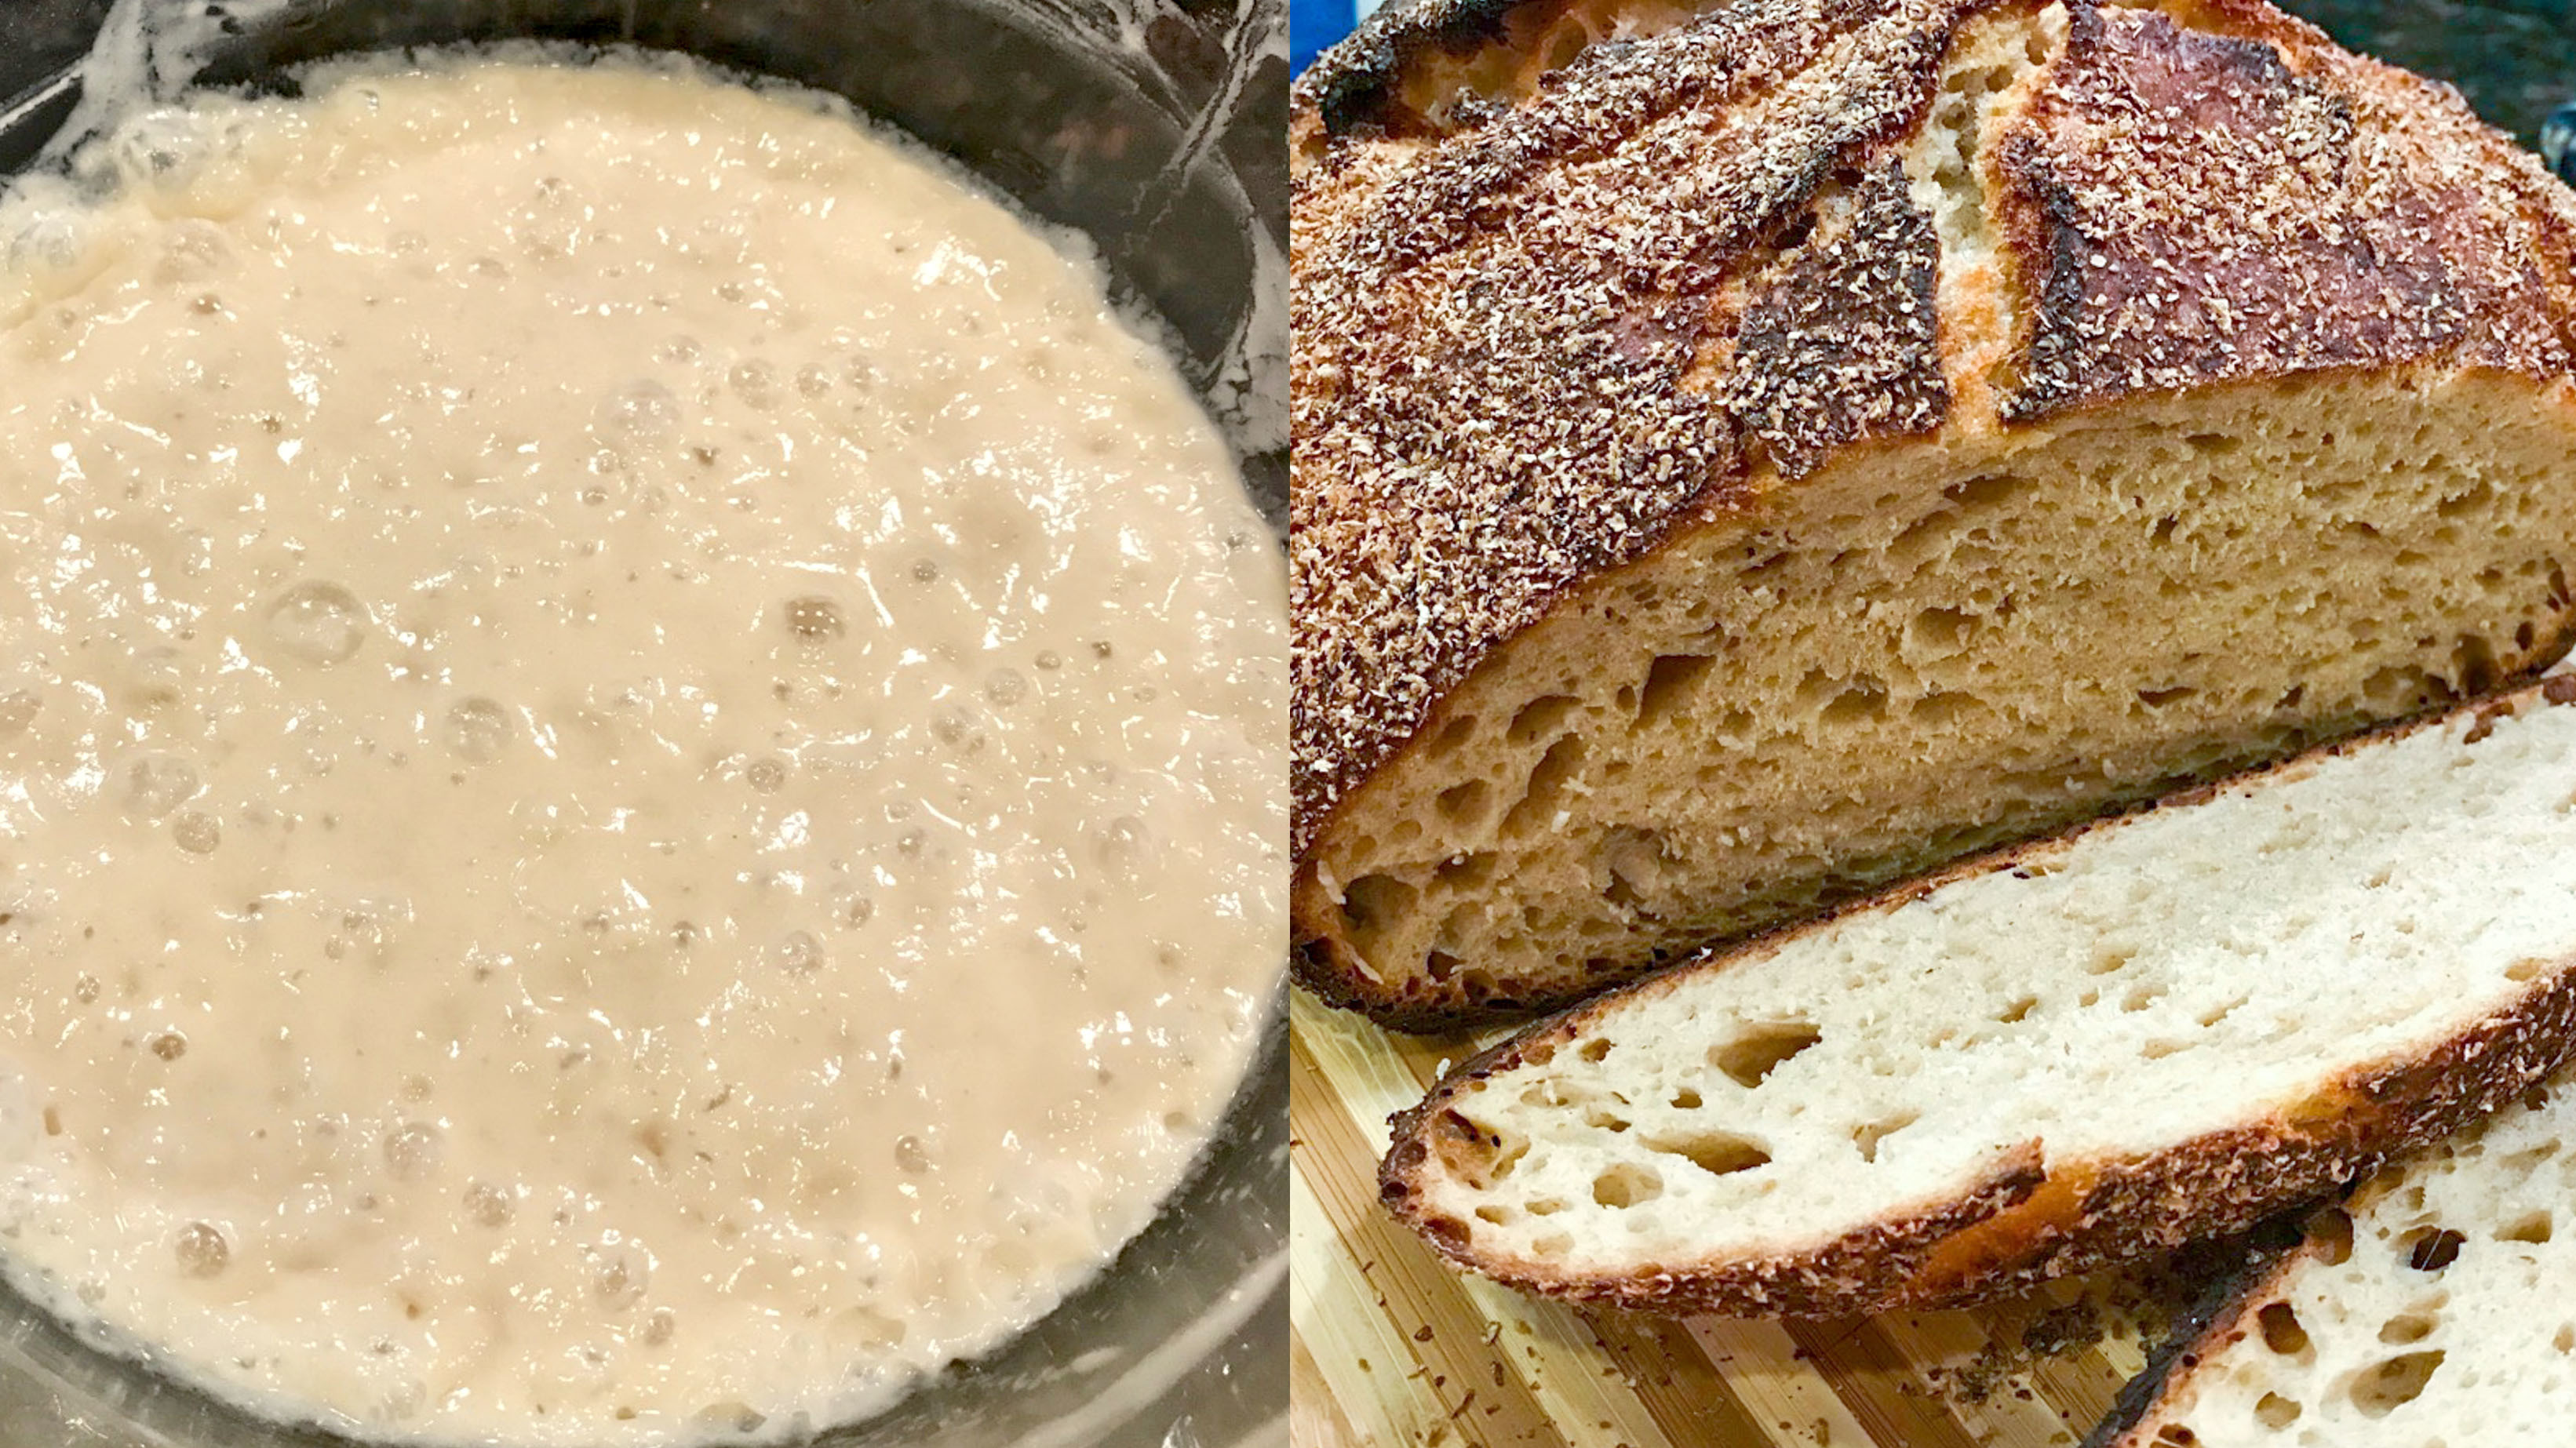 The Friendship Bread Project: Can Baking Promote Unity In A Divided World?